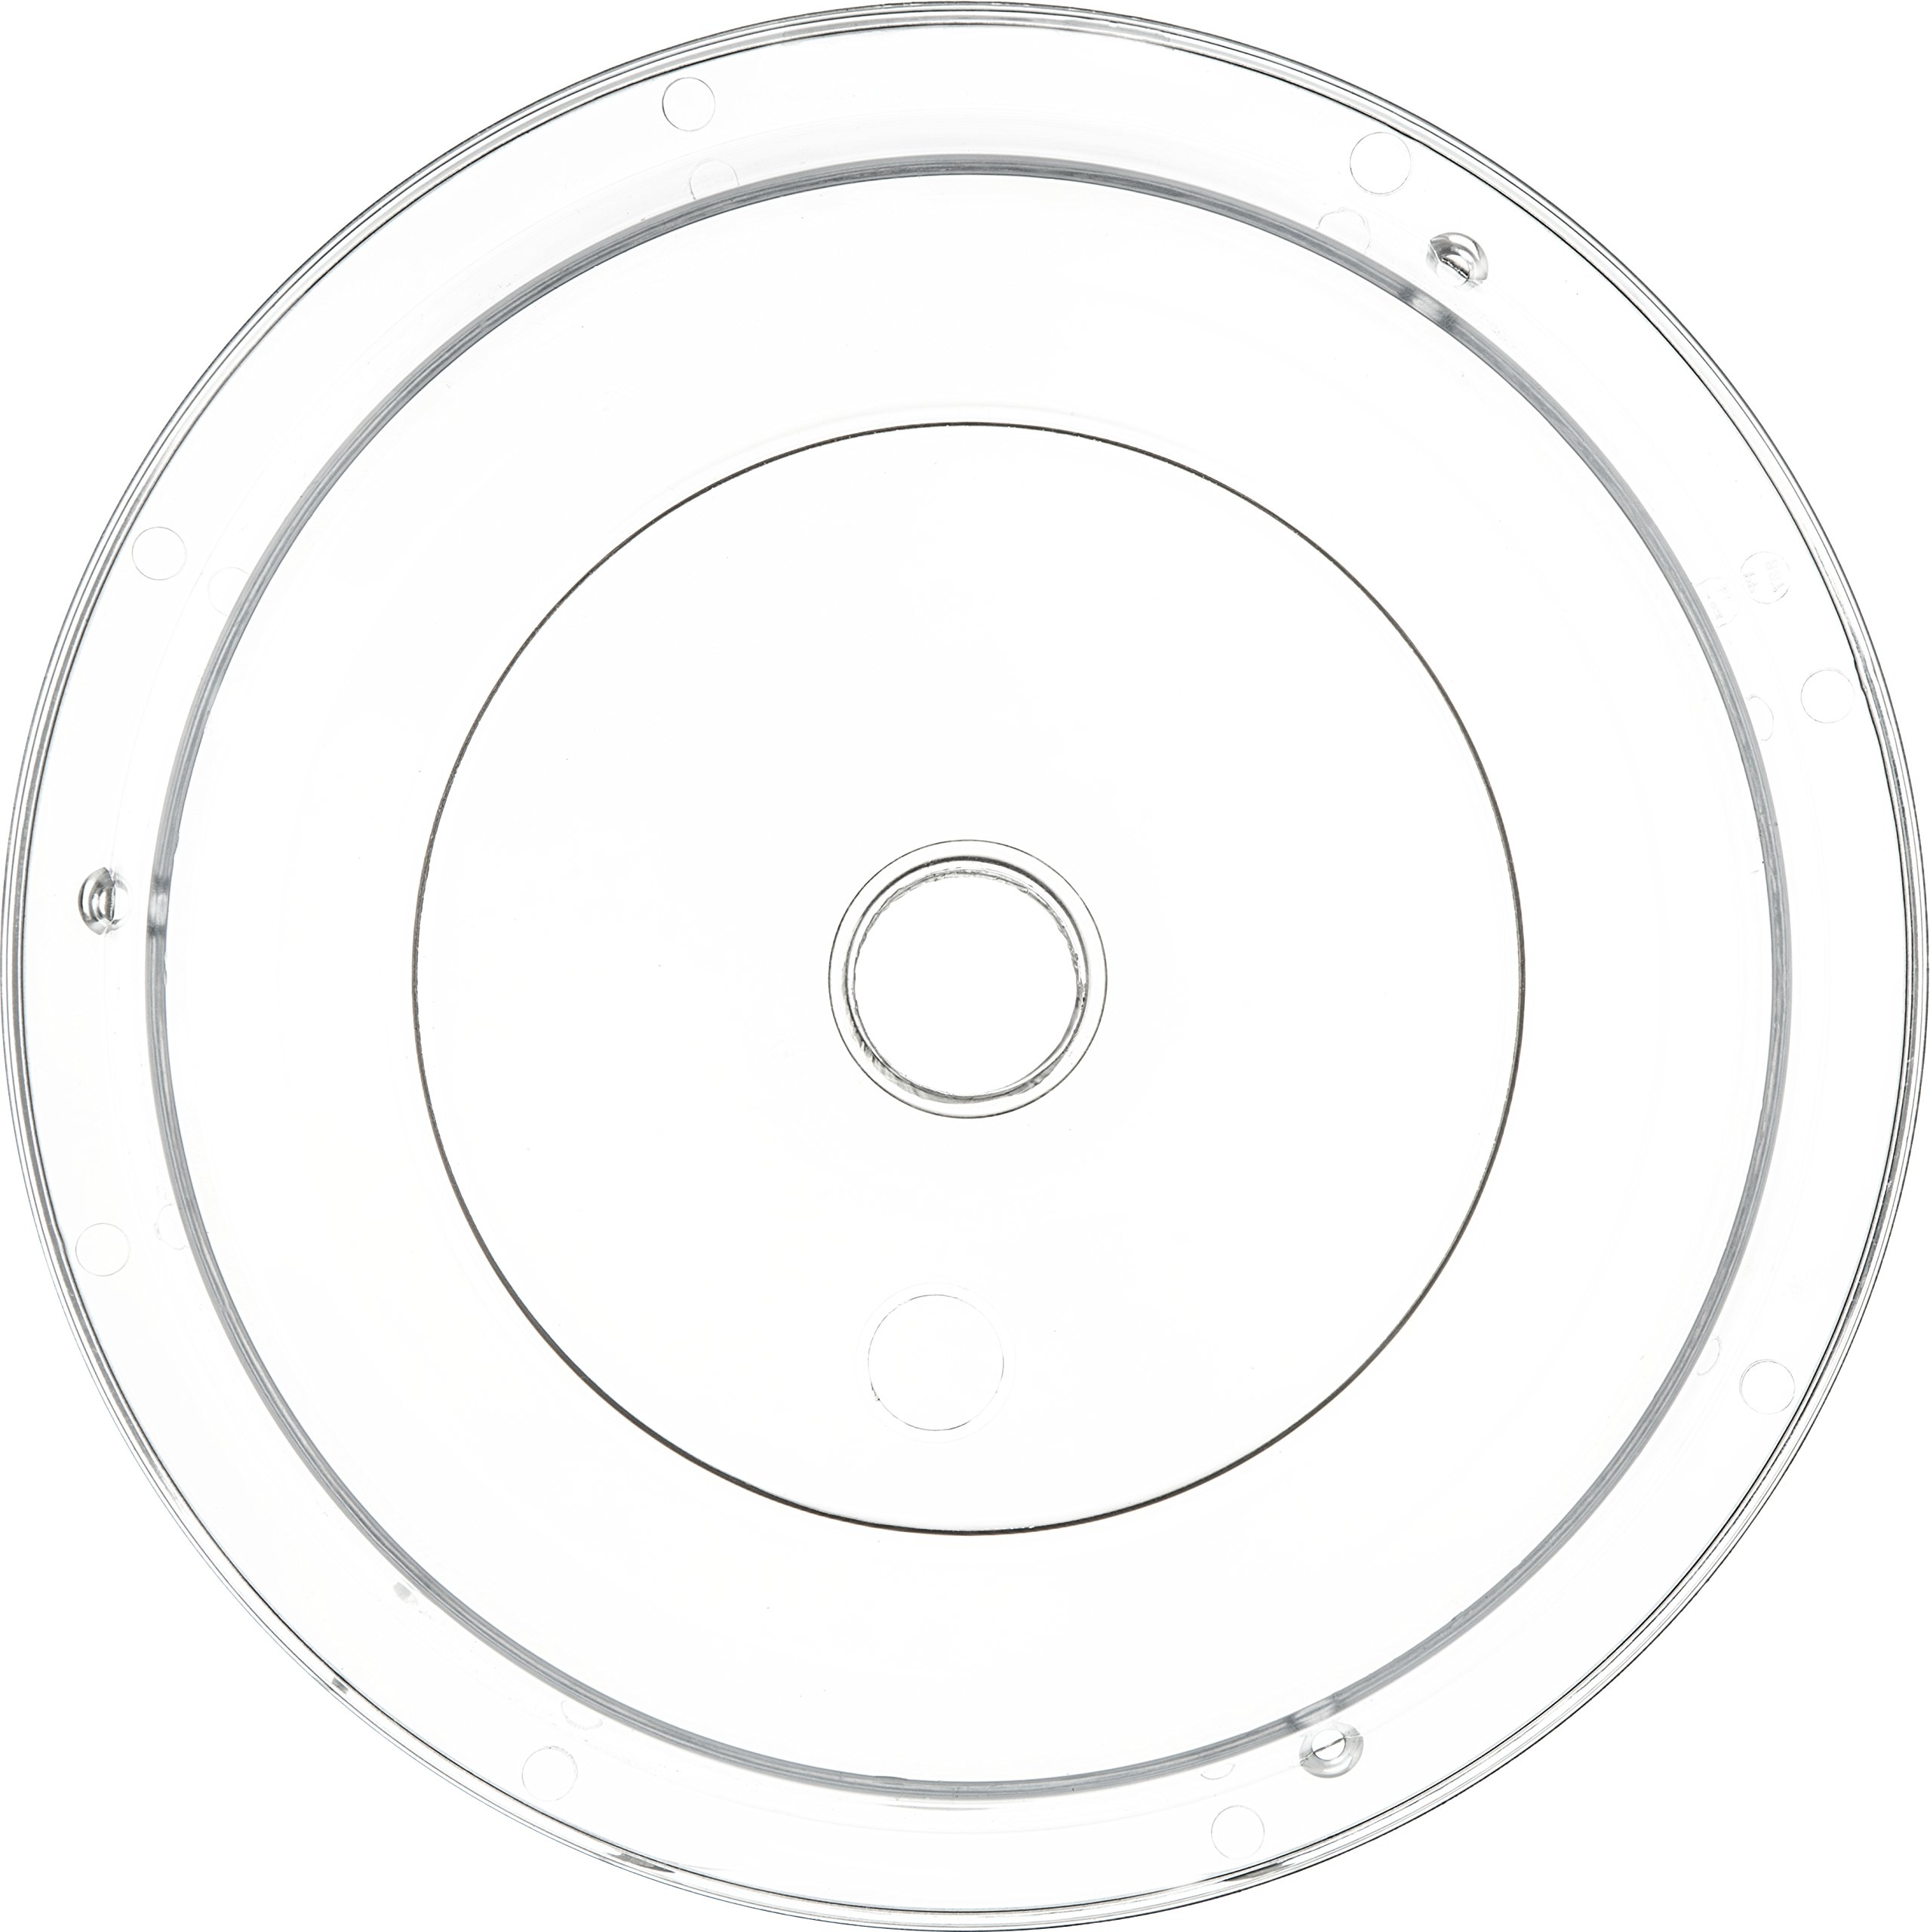 Carlisle 190007 Polycarbonate Plate Cover, 9.37'' Bottom Diameter x 2.56'' Height, Clear (Case of 12) by Carlisle (Image #2)